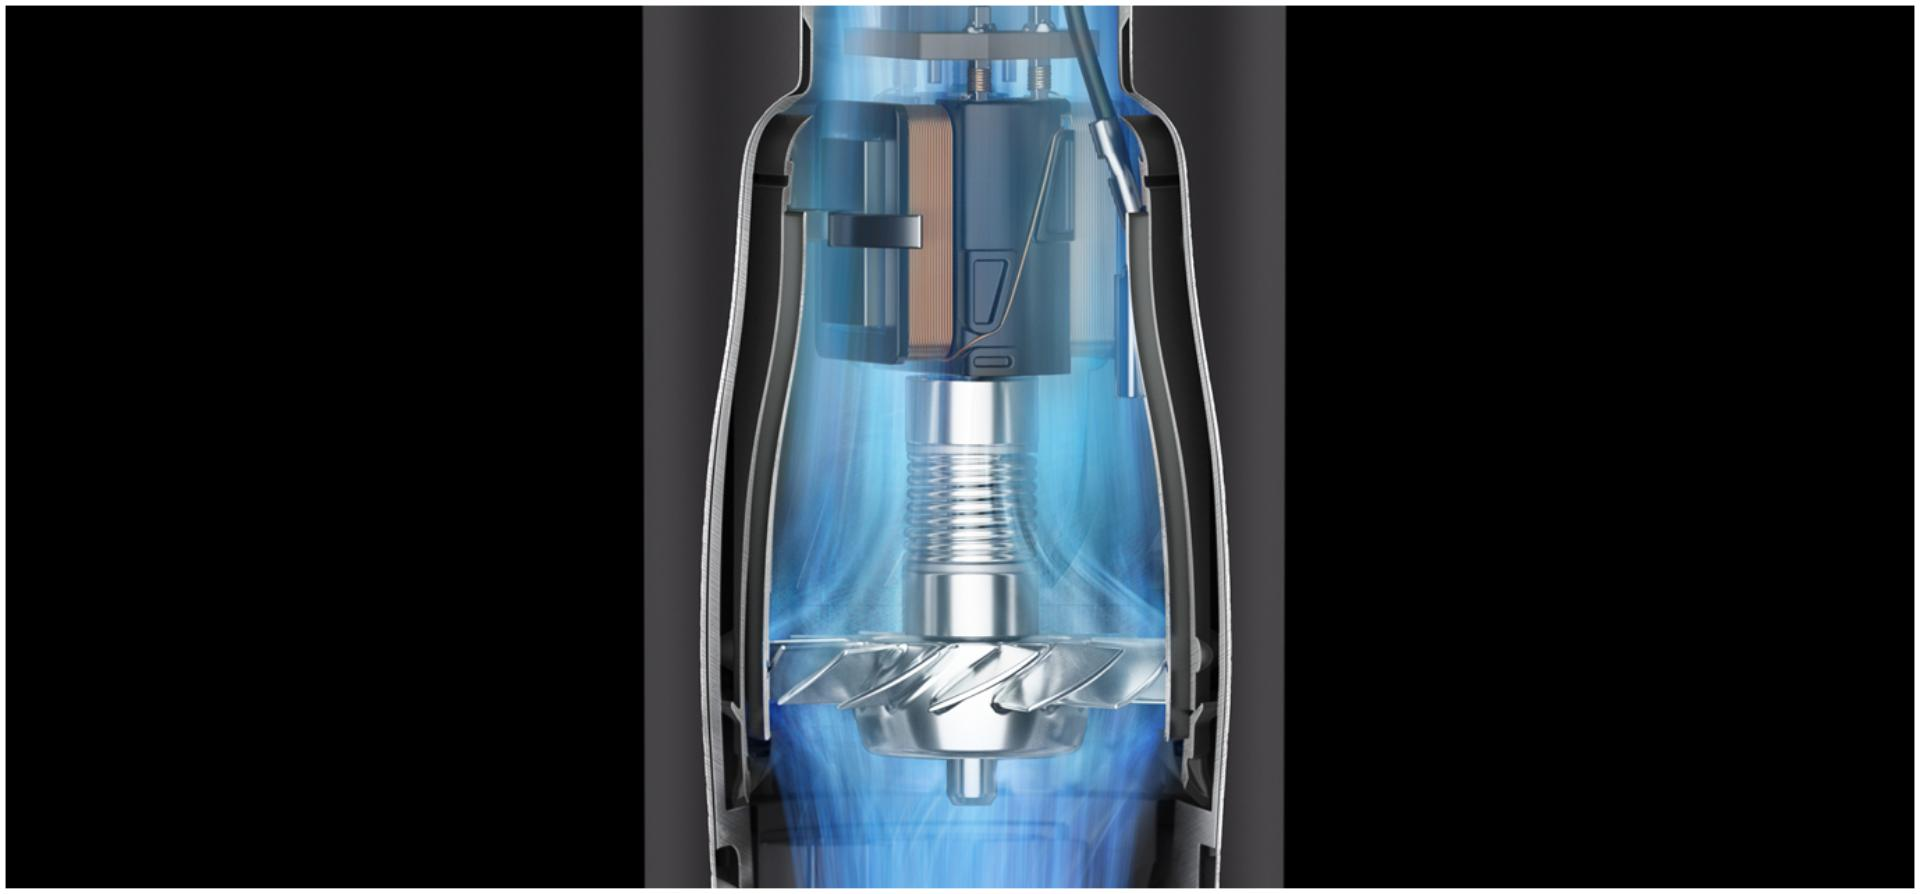 X-ray of the dyson digital motor V9